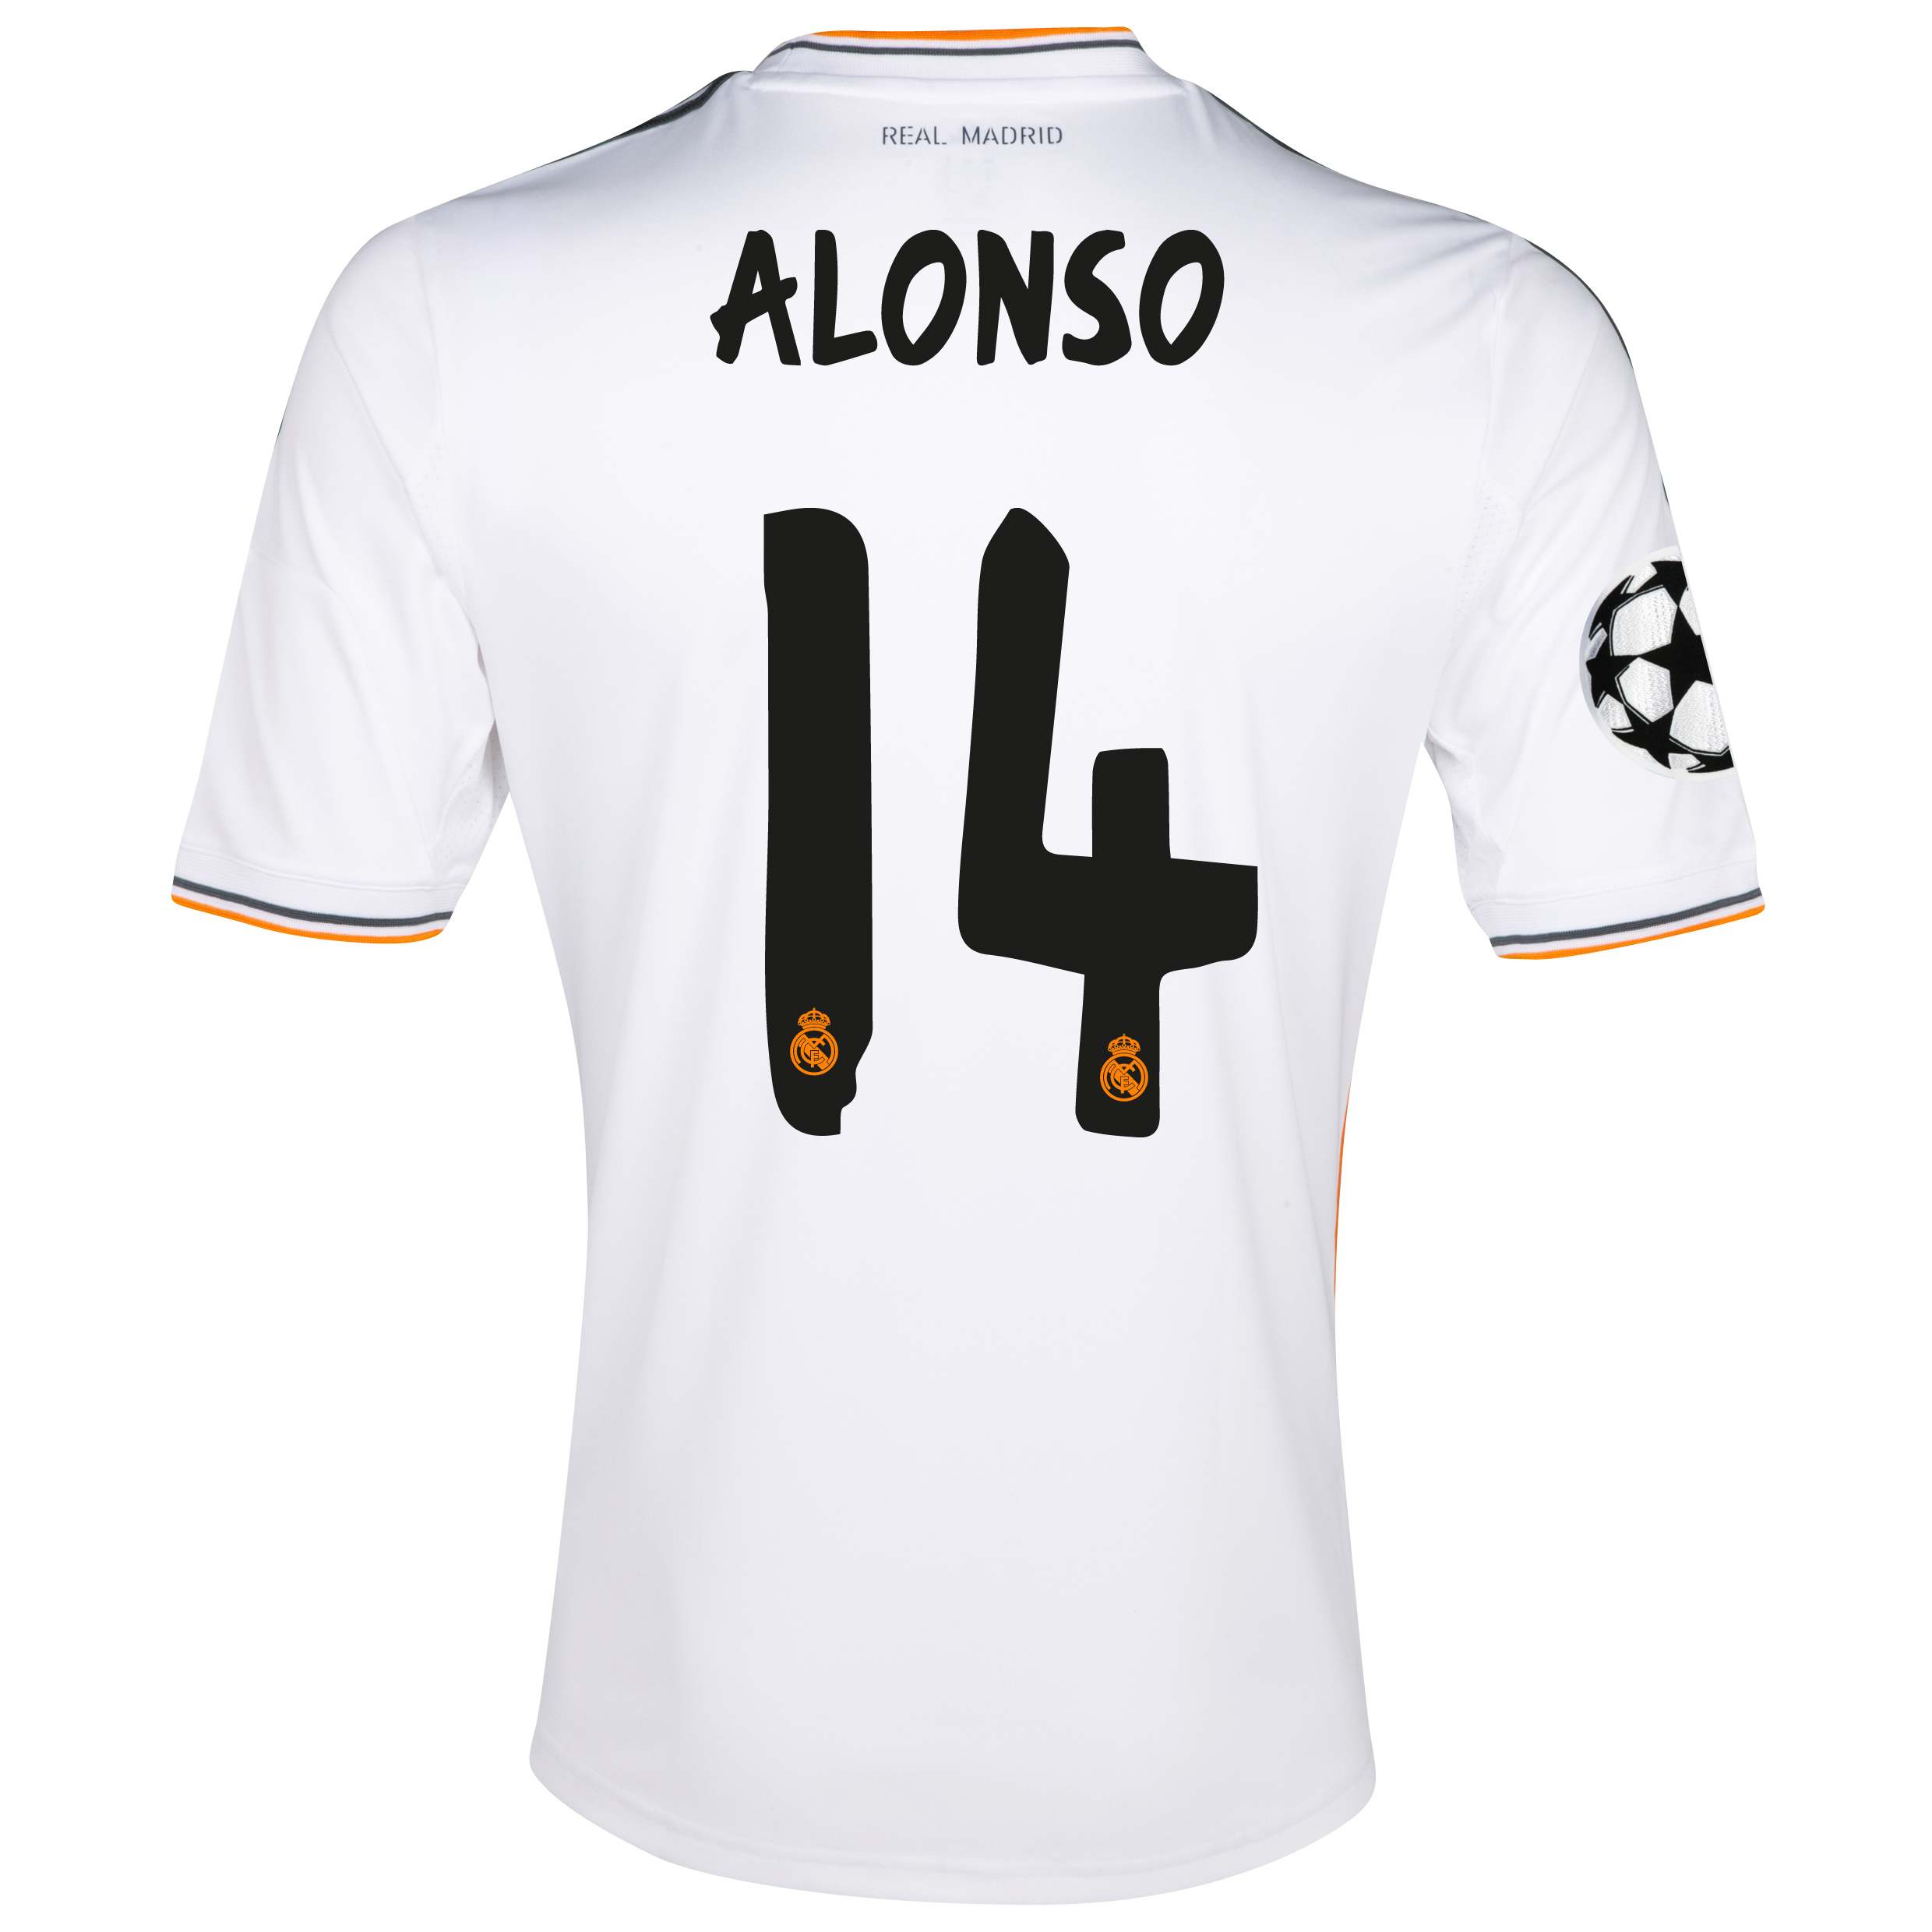 Real Madrid UEFA Champions League Home Shirt 2013/14 with Alonso 14 printing